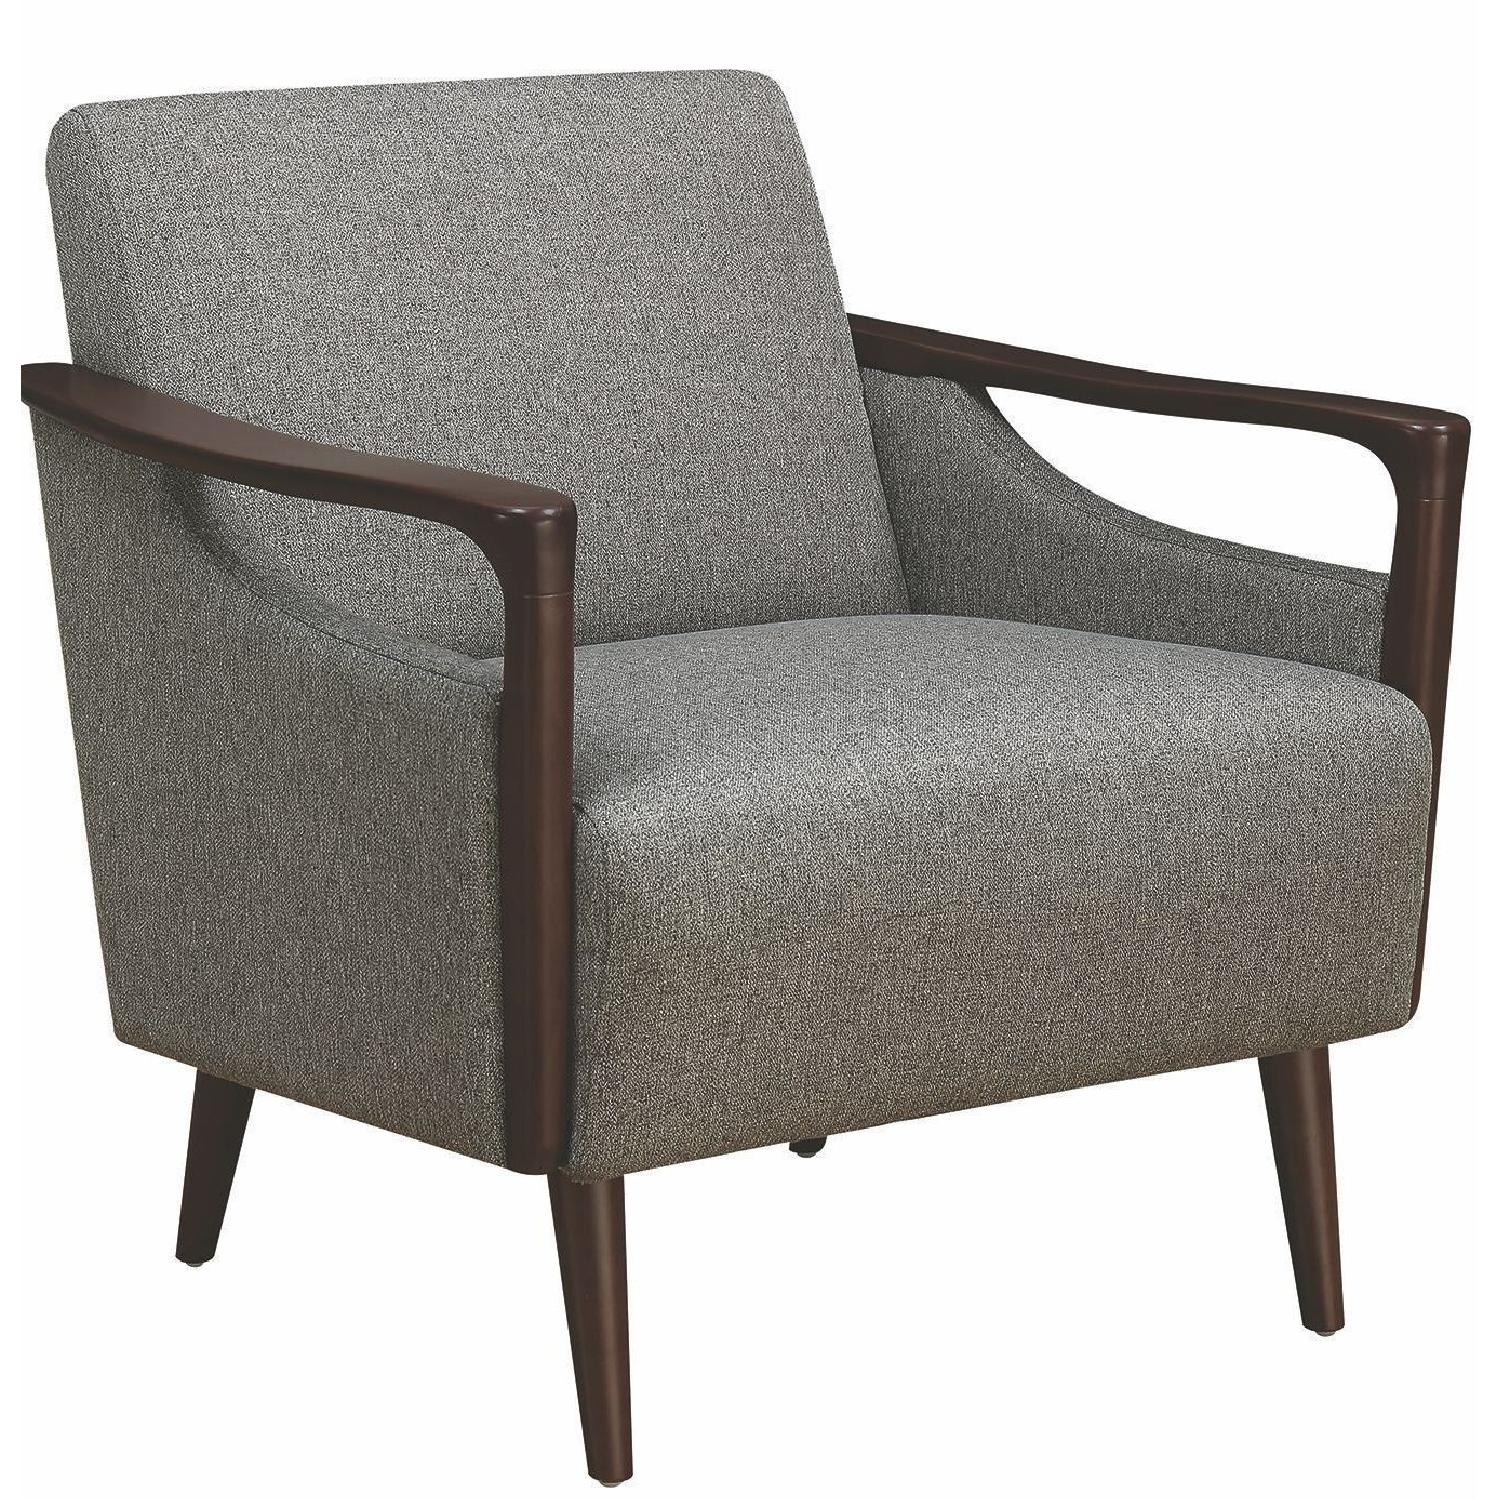 Modern Accent Chairs Mid Century Modern Accent Chair In Grey Fabric W Wood